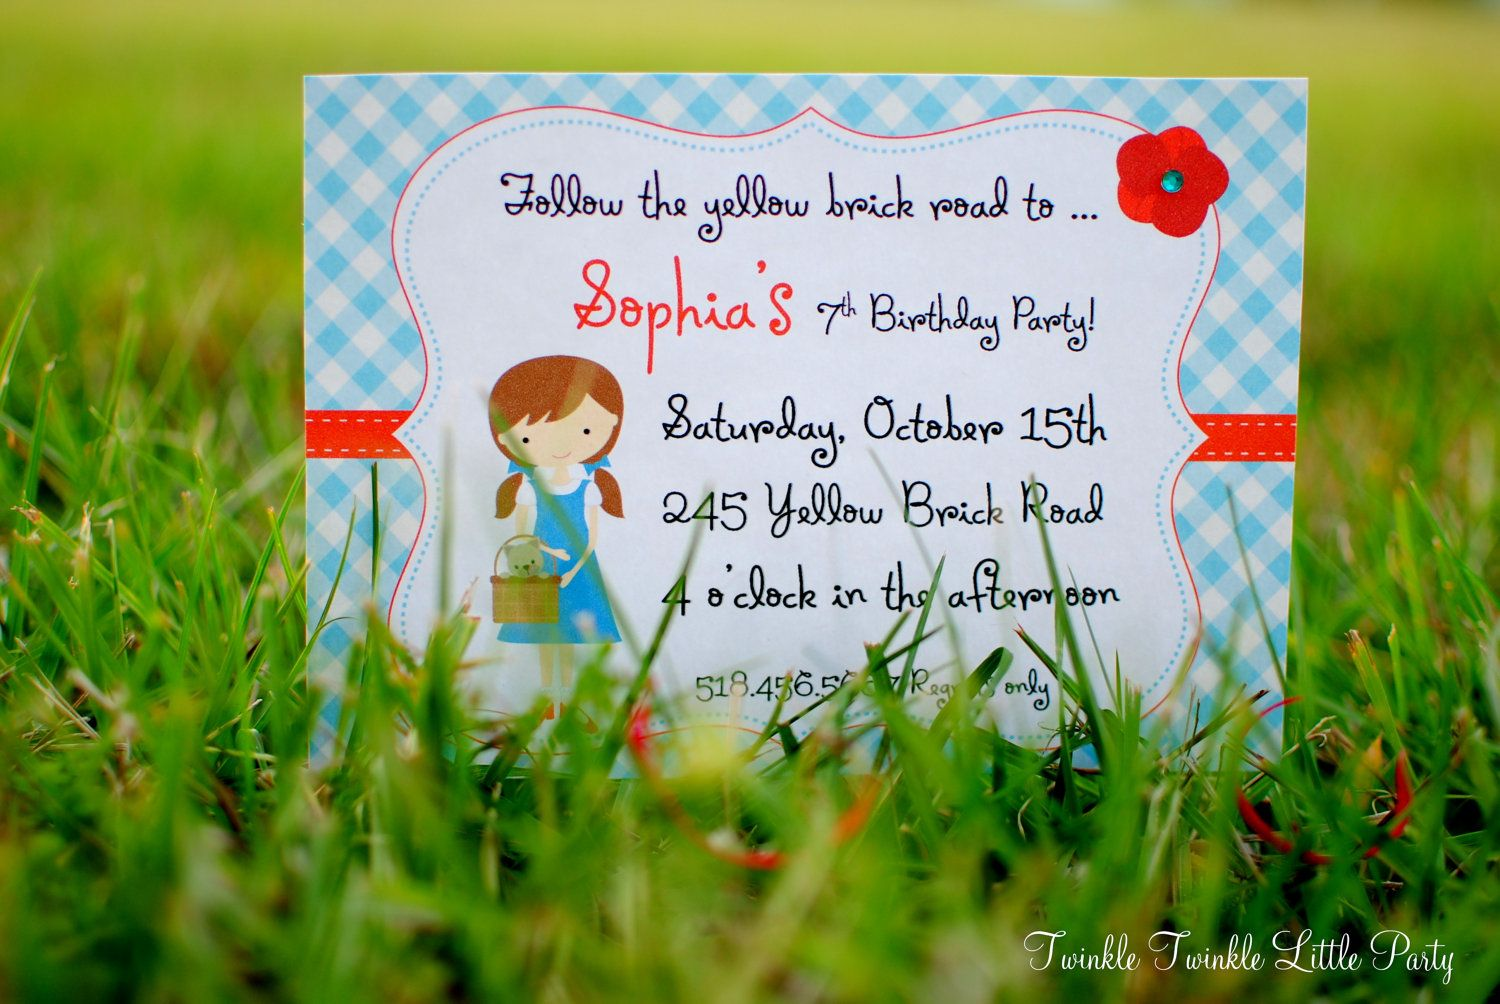 birthday party invitations printable%0A PRINTABLE Wizard of Oz inspired Invitations